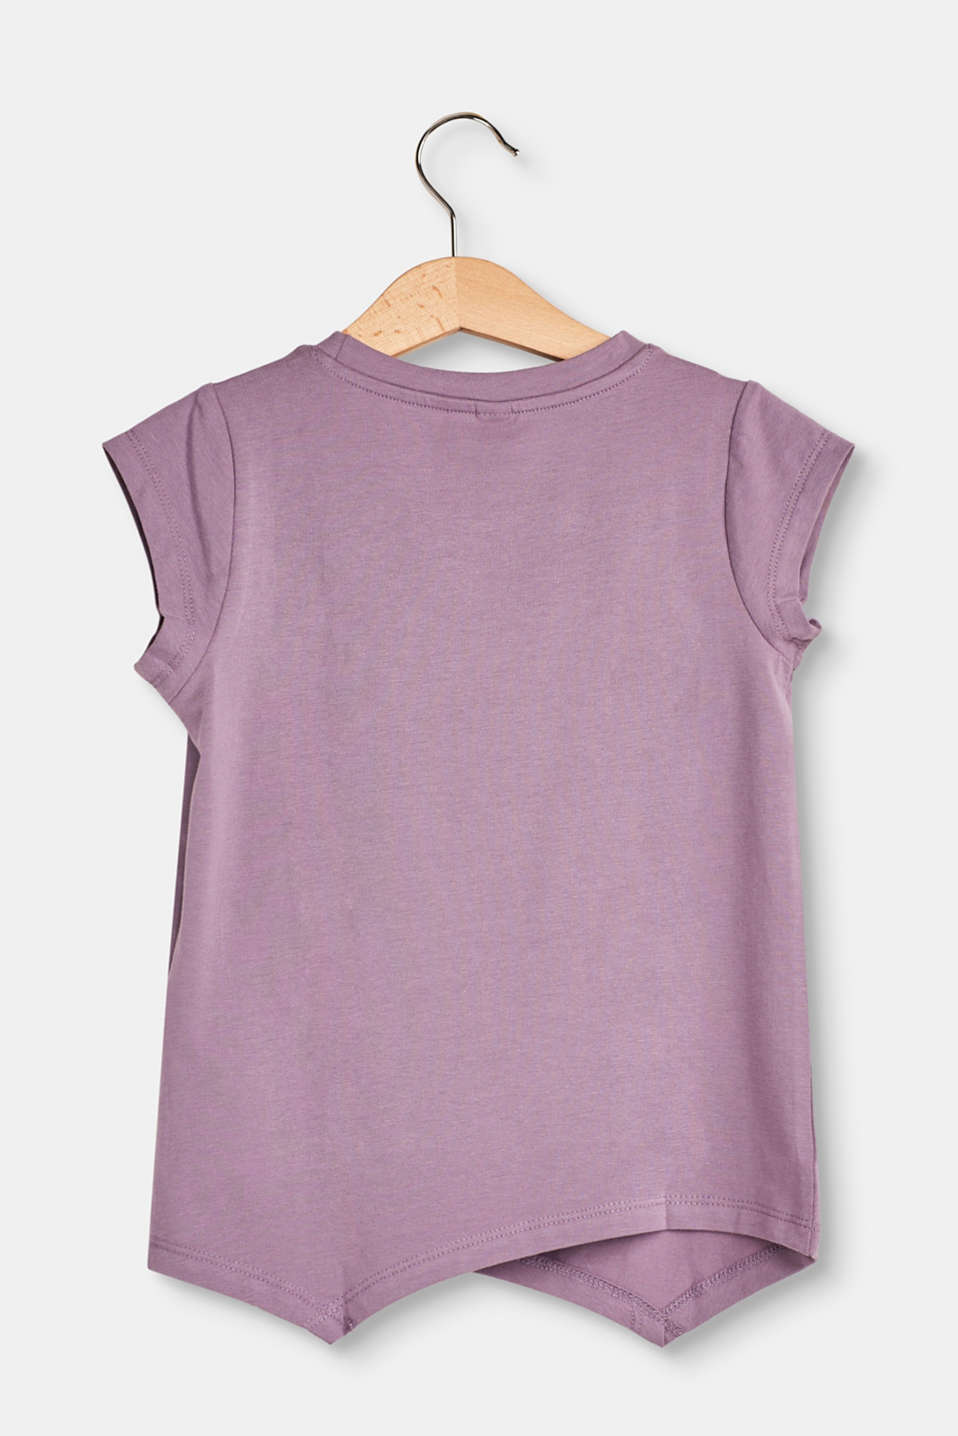 Soft T-shirt with a pocket and handkerchief hems